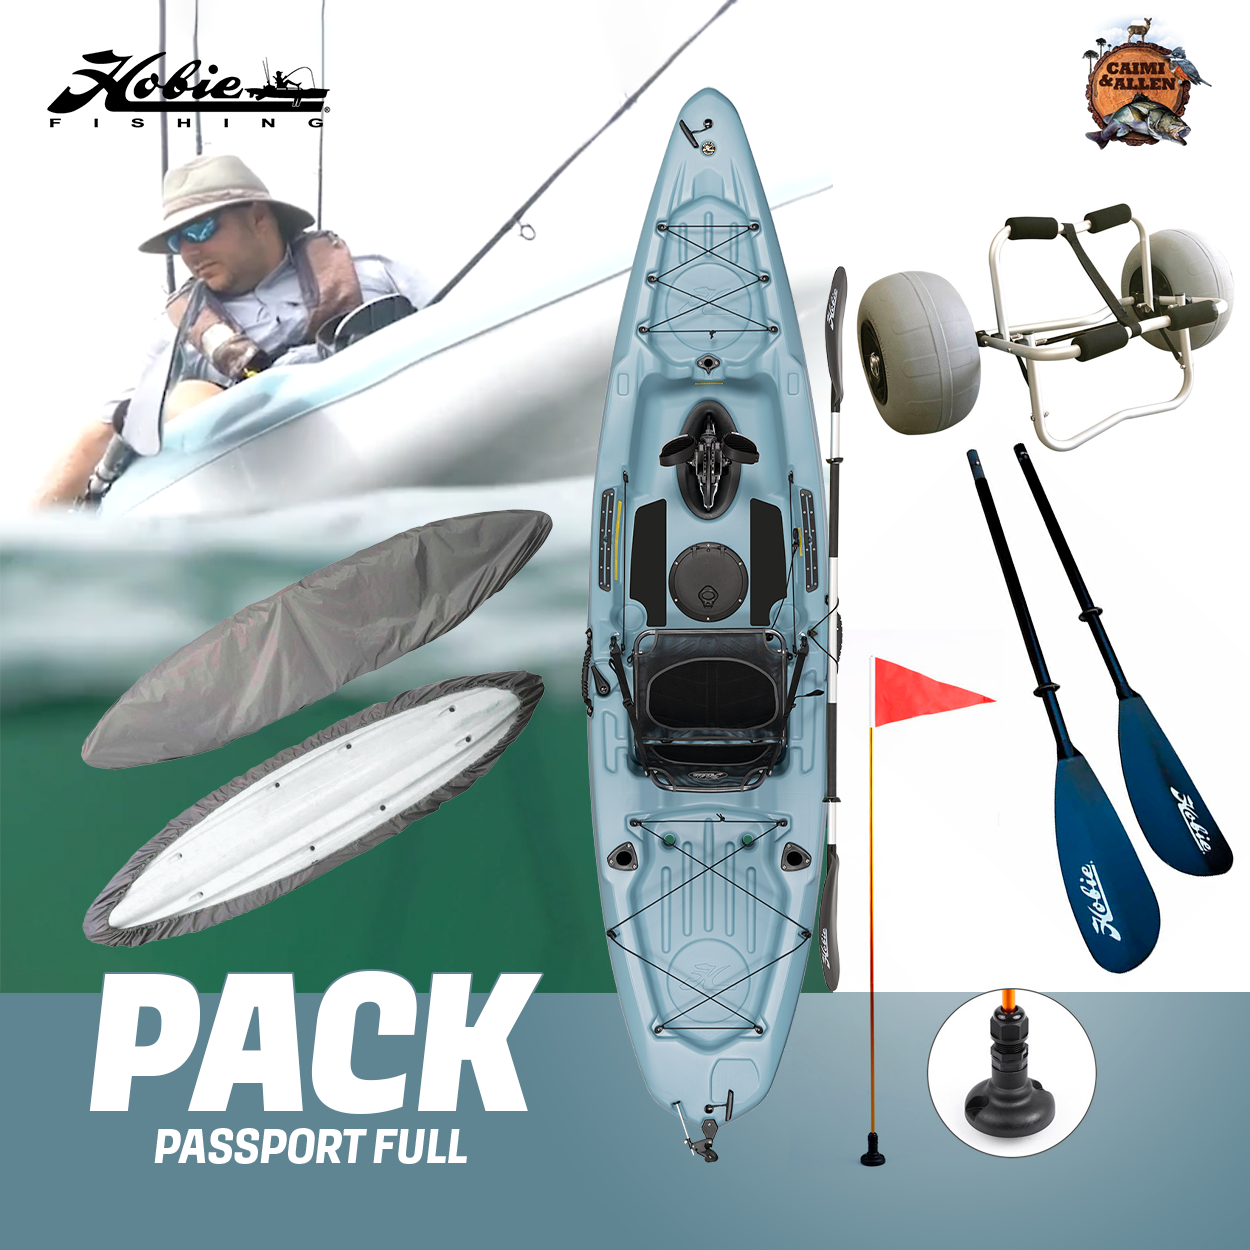 PACK HOBIE PASSPORT 12 - FULL PEDAL